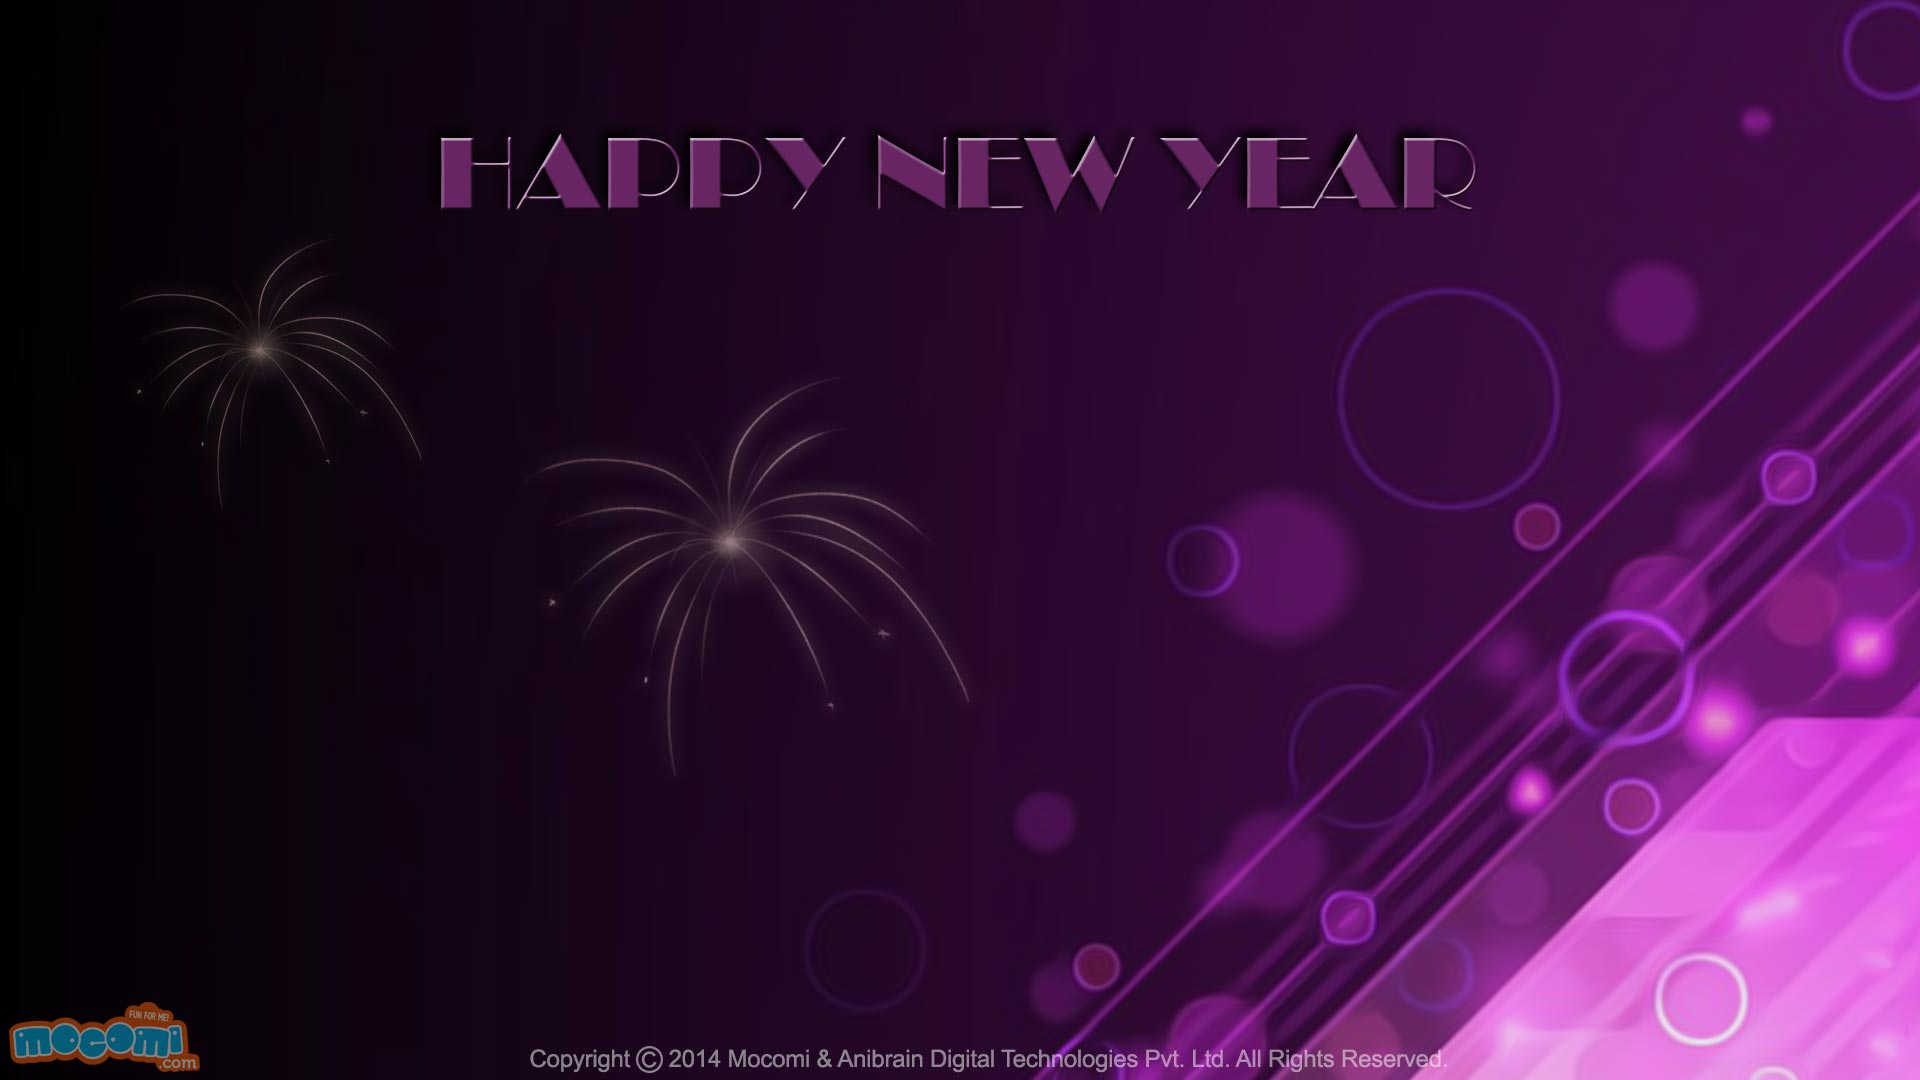 Happy New Year Wallpaper 11  Desktop Wallpaper for Kids  Mocomi